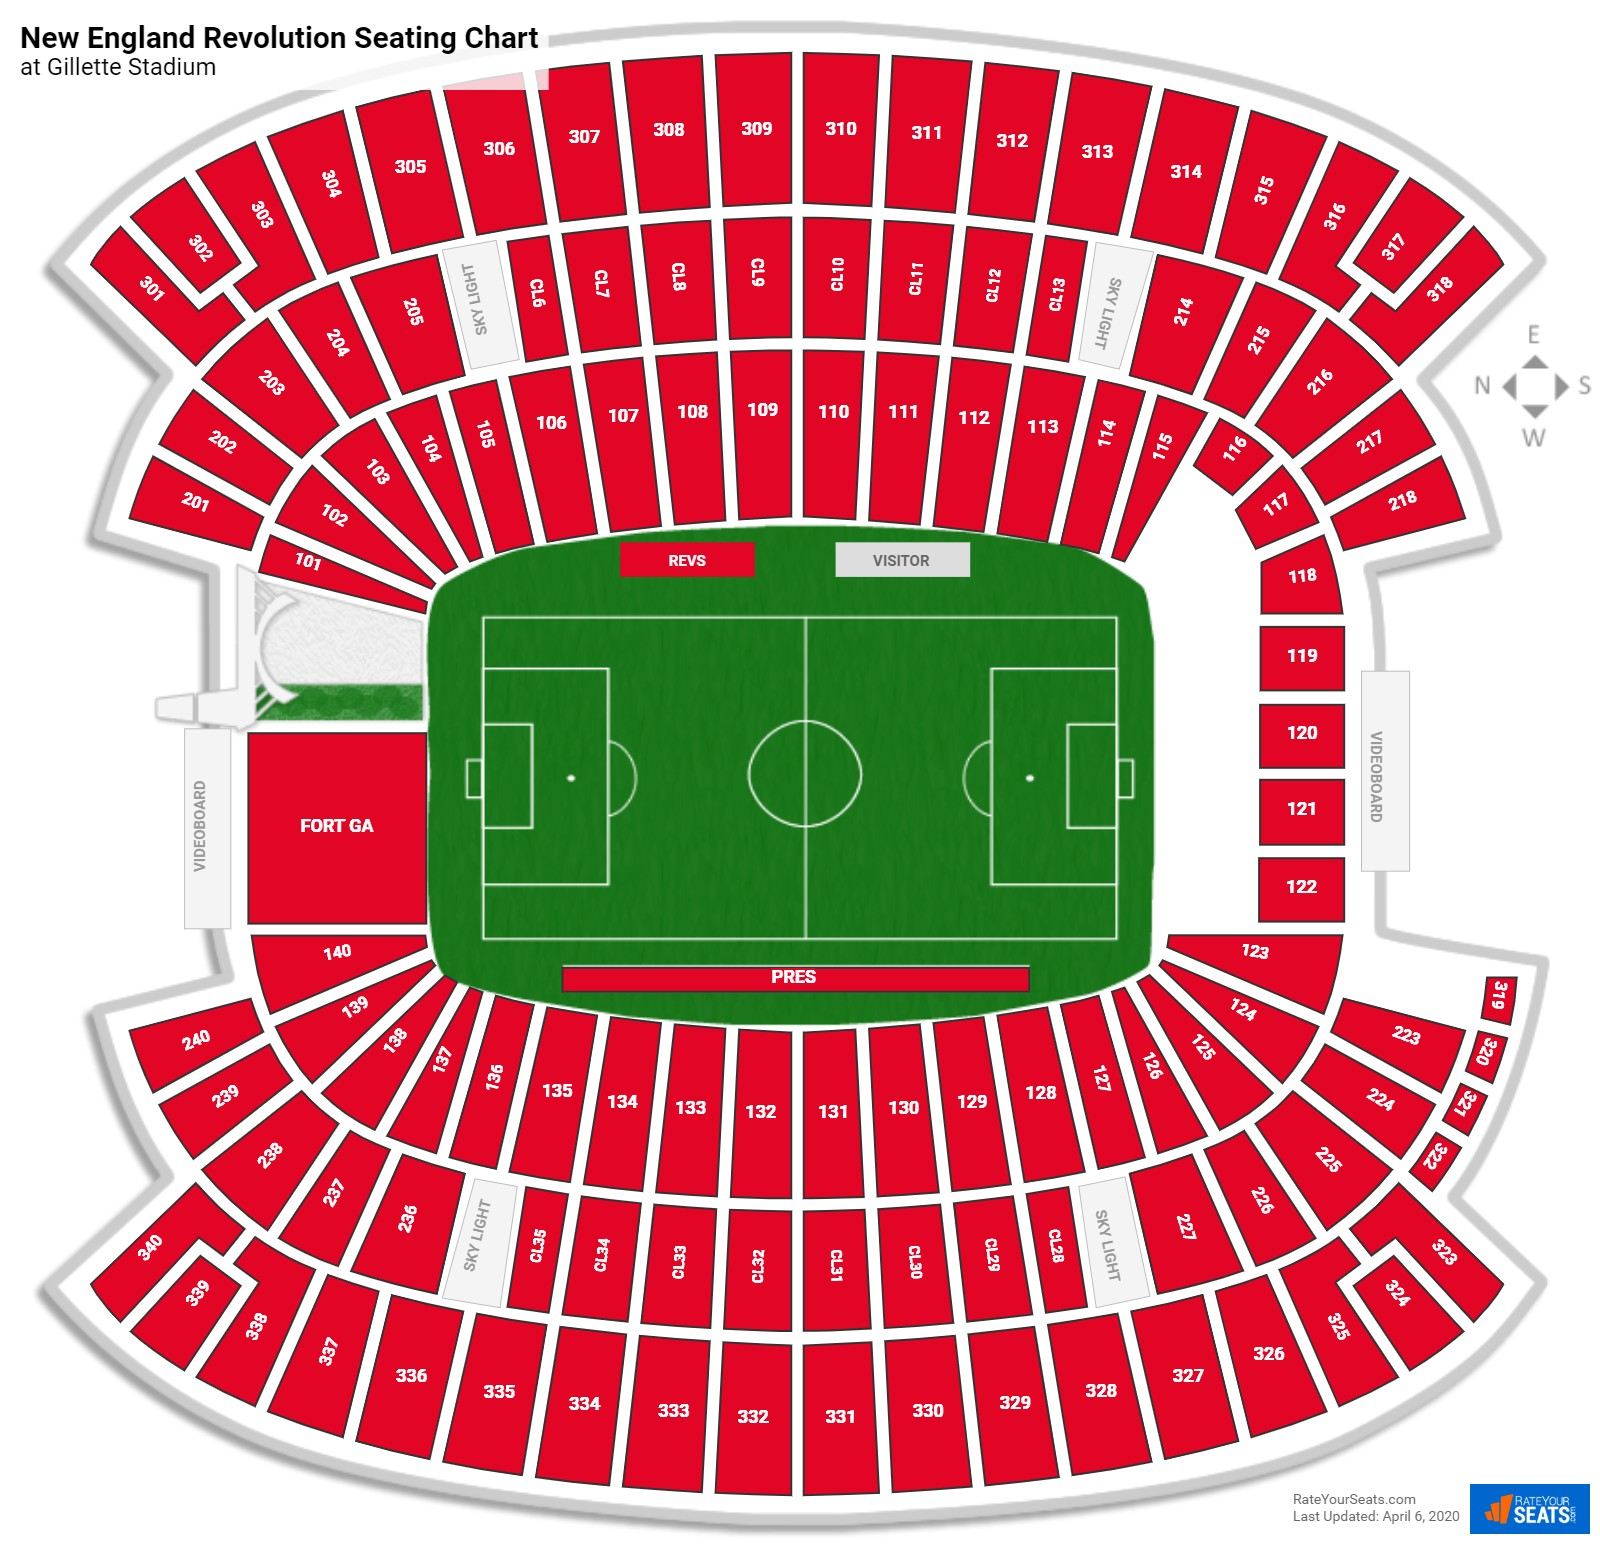 New England Revolution Seating Chart